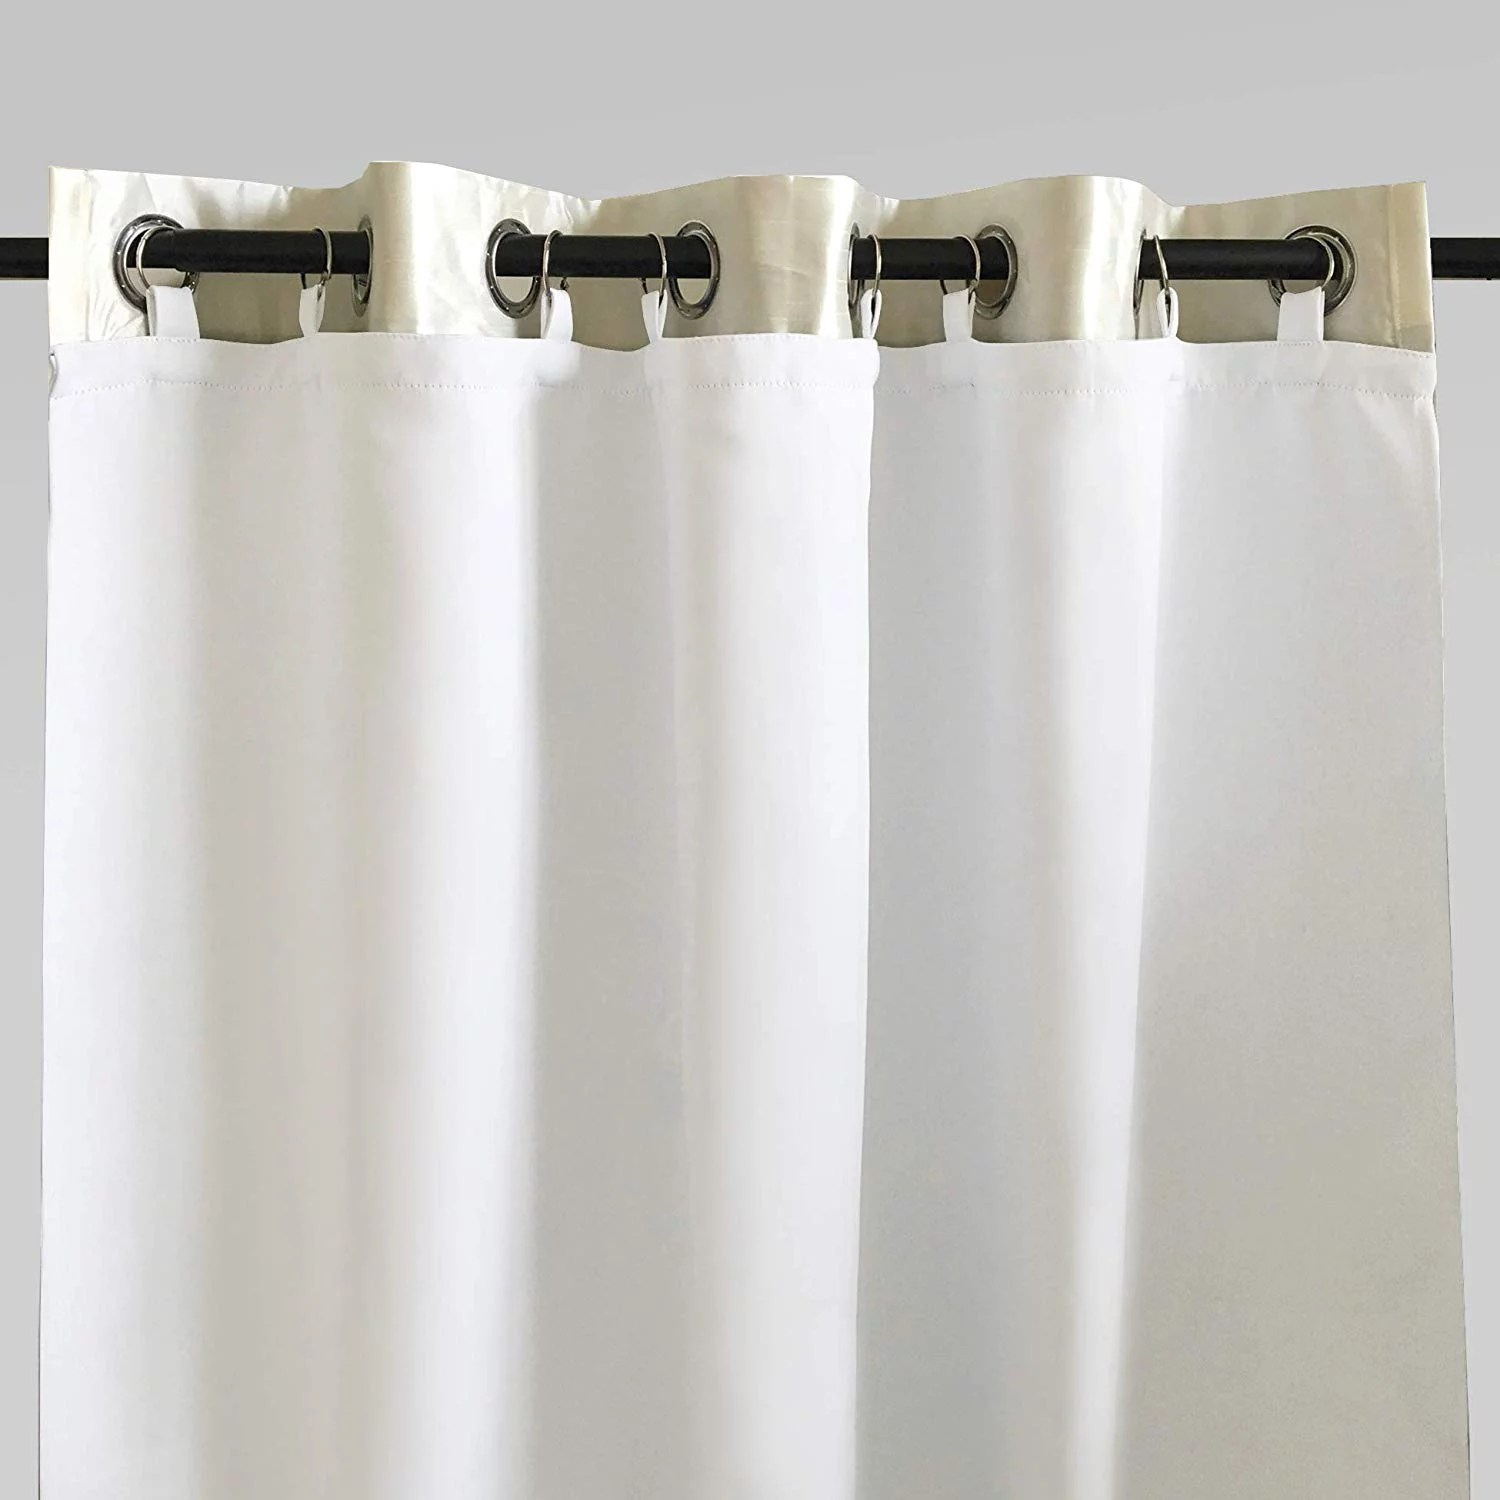 driftaway thermal insulated 100 darkening blackout curtain liner 63 inch grommet curtains set of 2 each liner size 50 x58 rings included